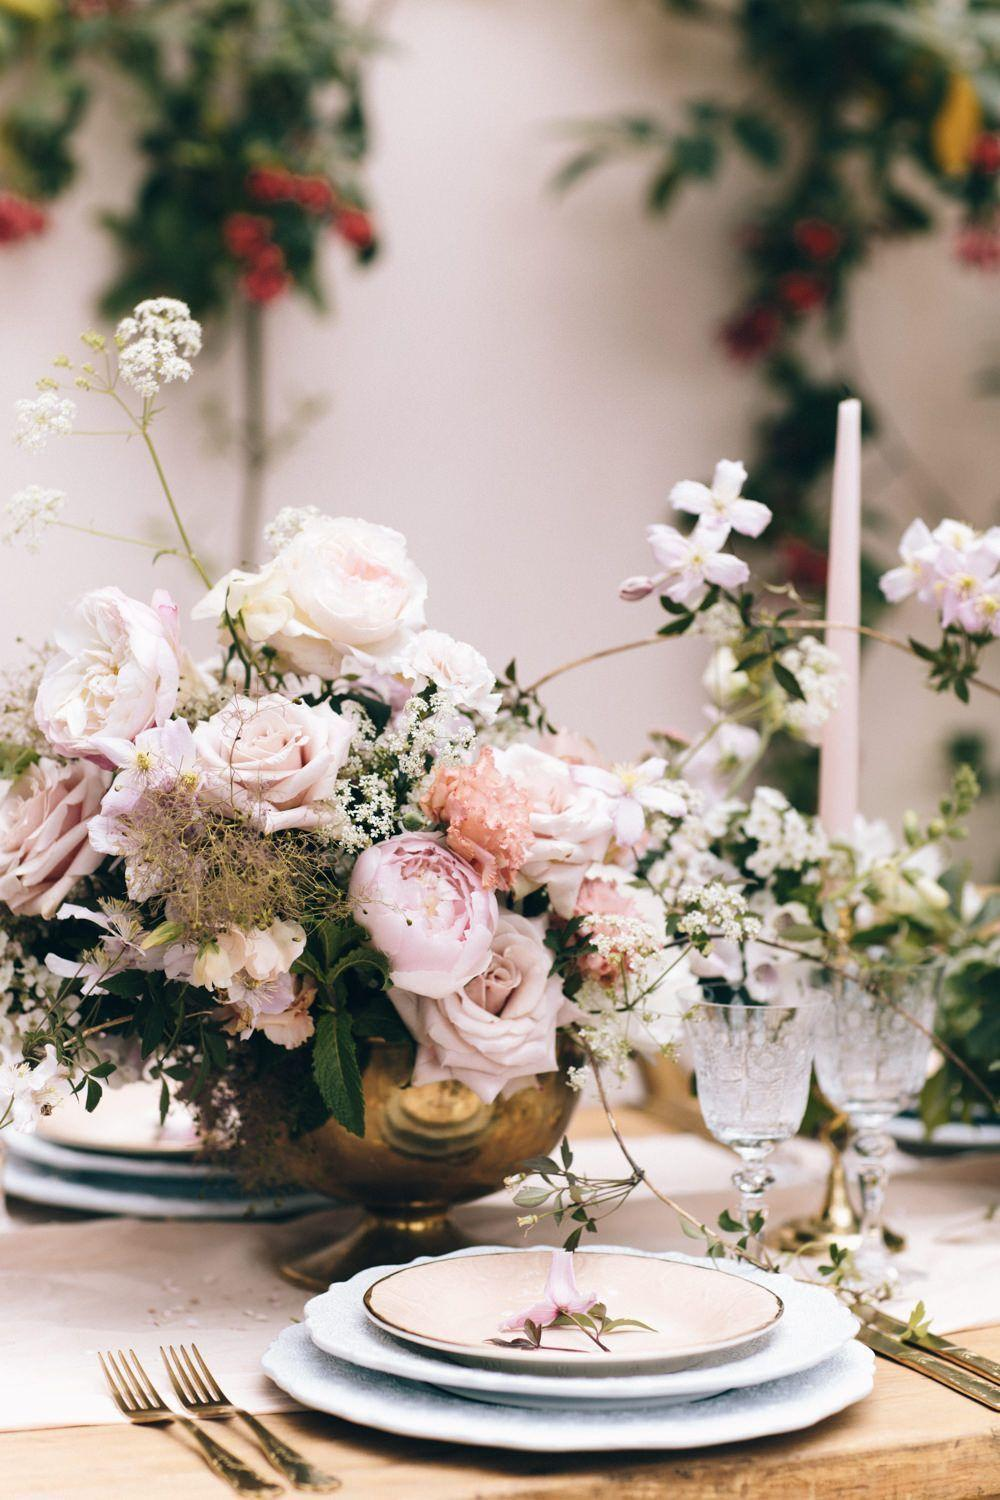 Wedding arrangements: 70 ideas for table, flowers and decoration 43